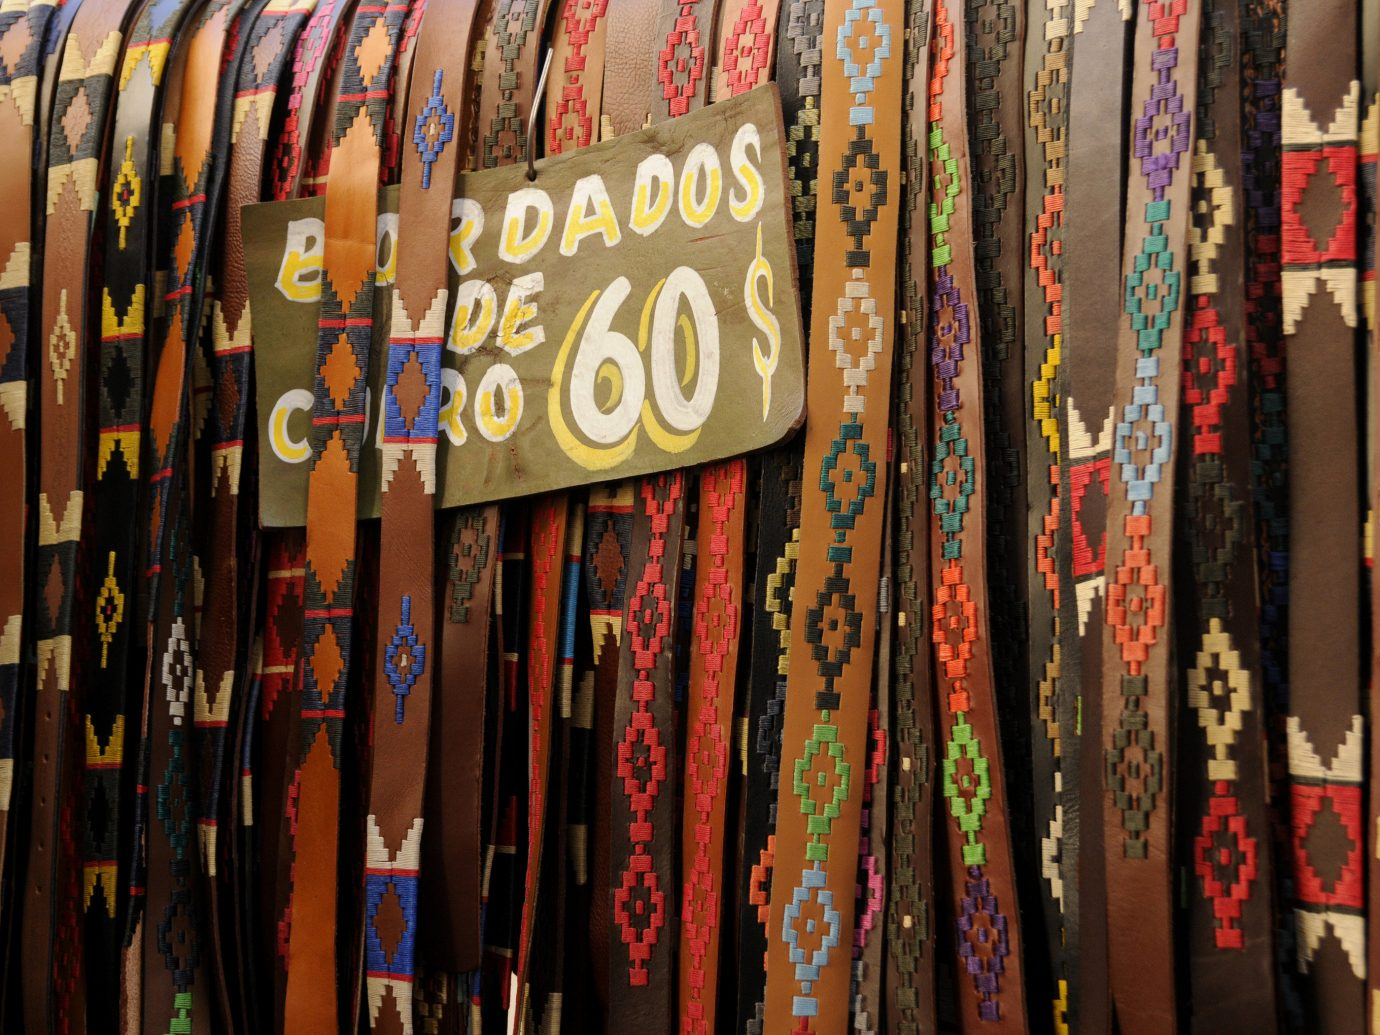 Trip Ideas color hanging store different rack row many art bunch lots interior design retail Design textile shopping assortment arranged lined several colored variety stacked